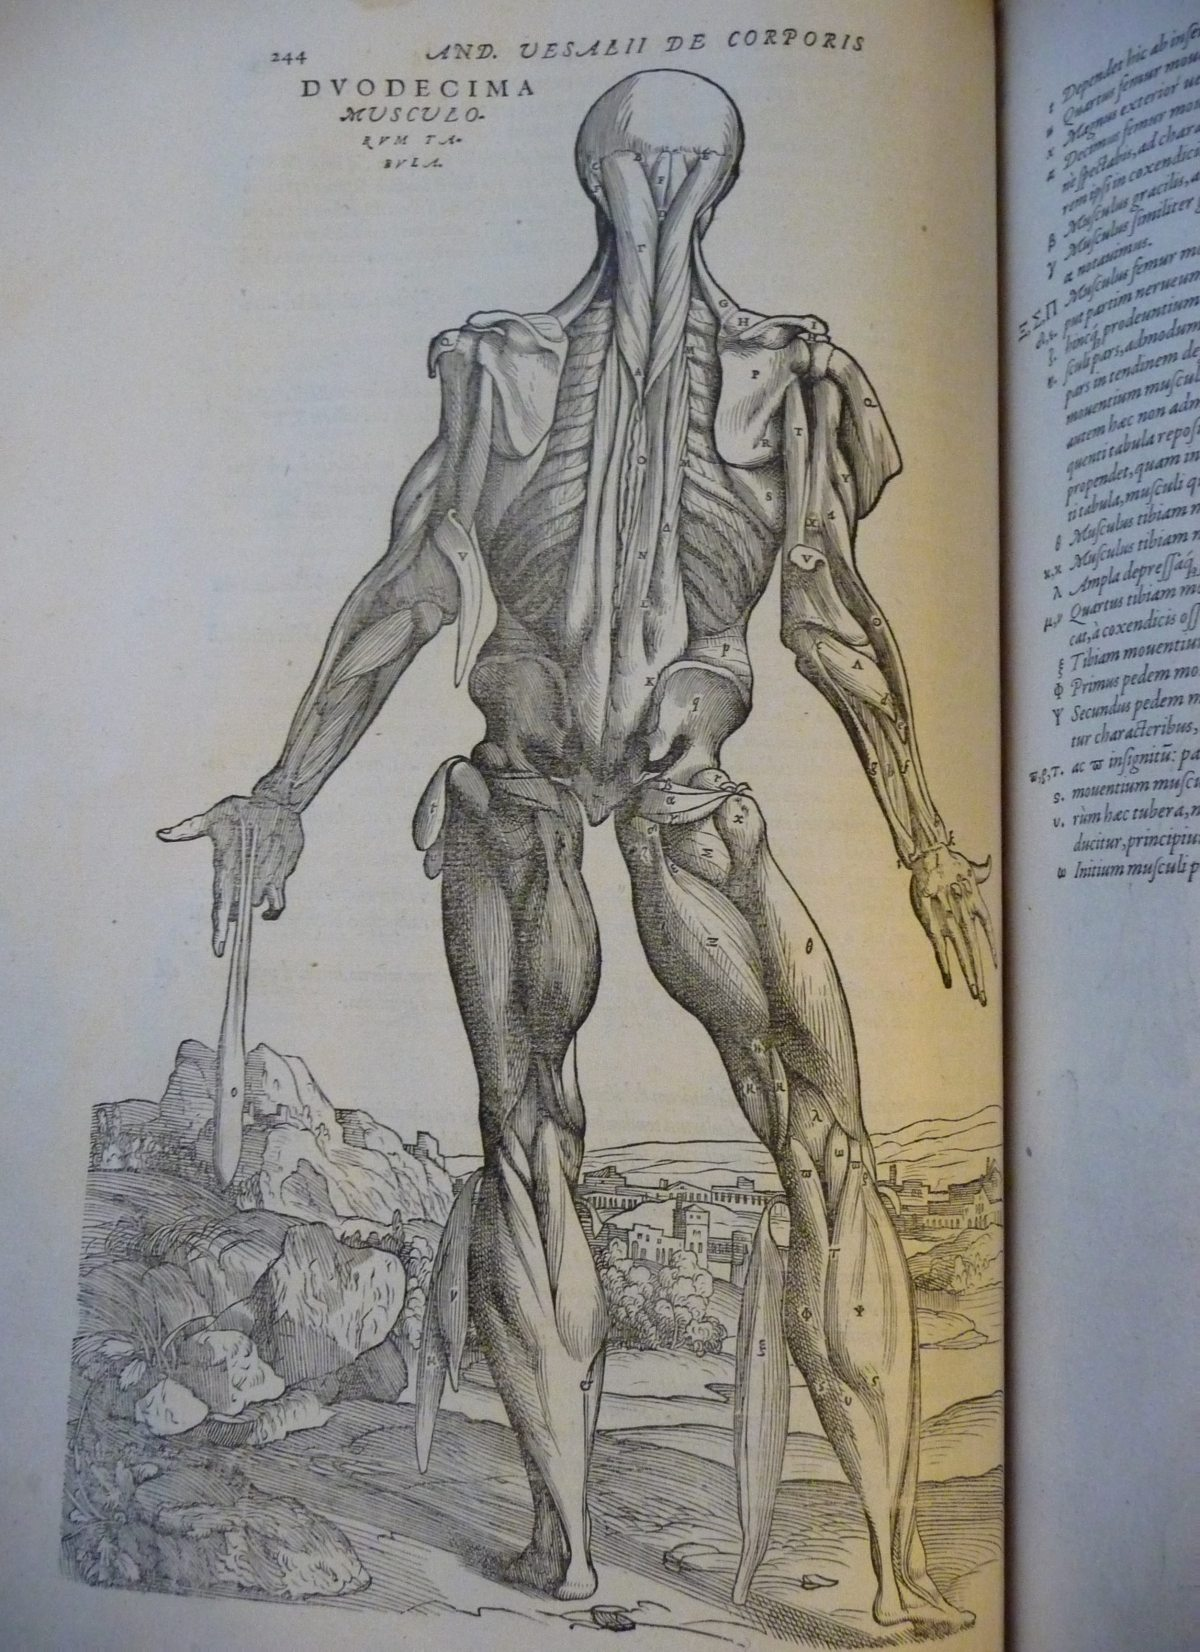 An intricately detailed drawing of human dissection in an allegorical pose, from 'De humani corporis fabrica' (The fabric of the human body) by Andreas Vesalius.